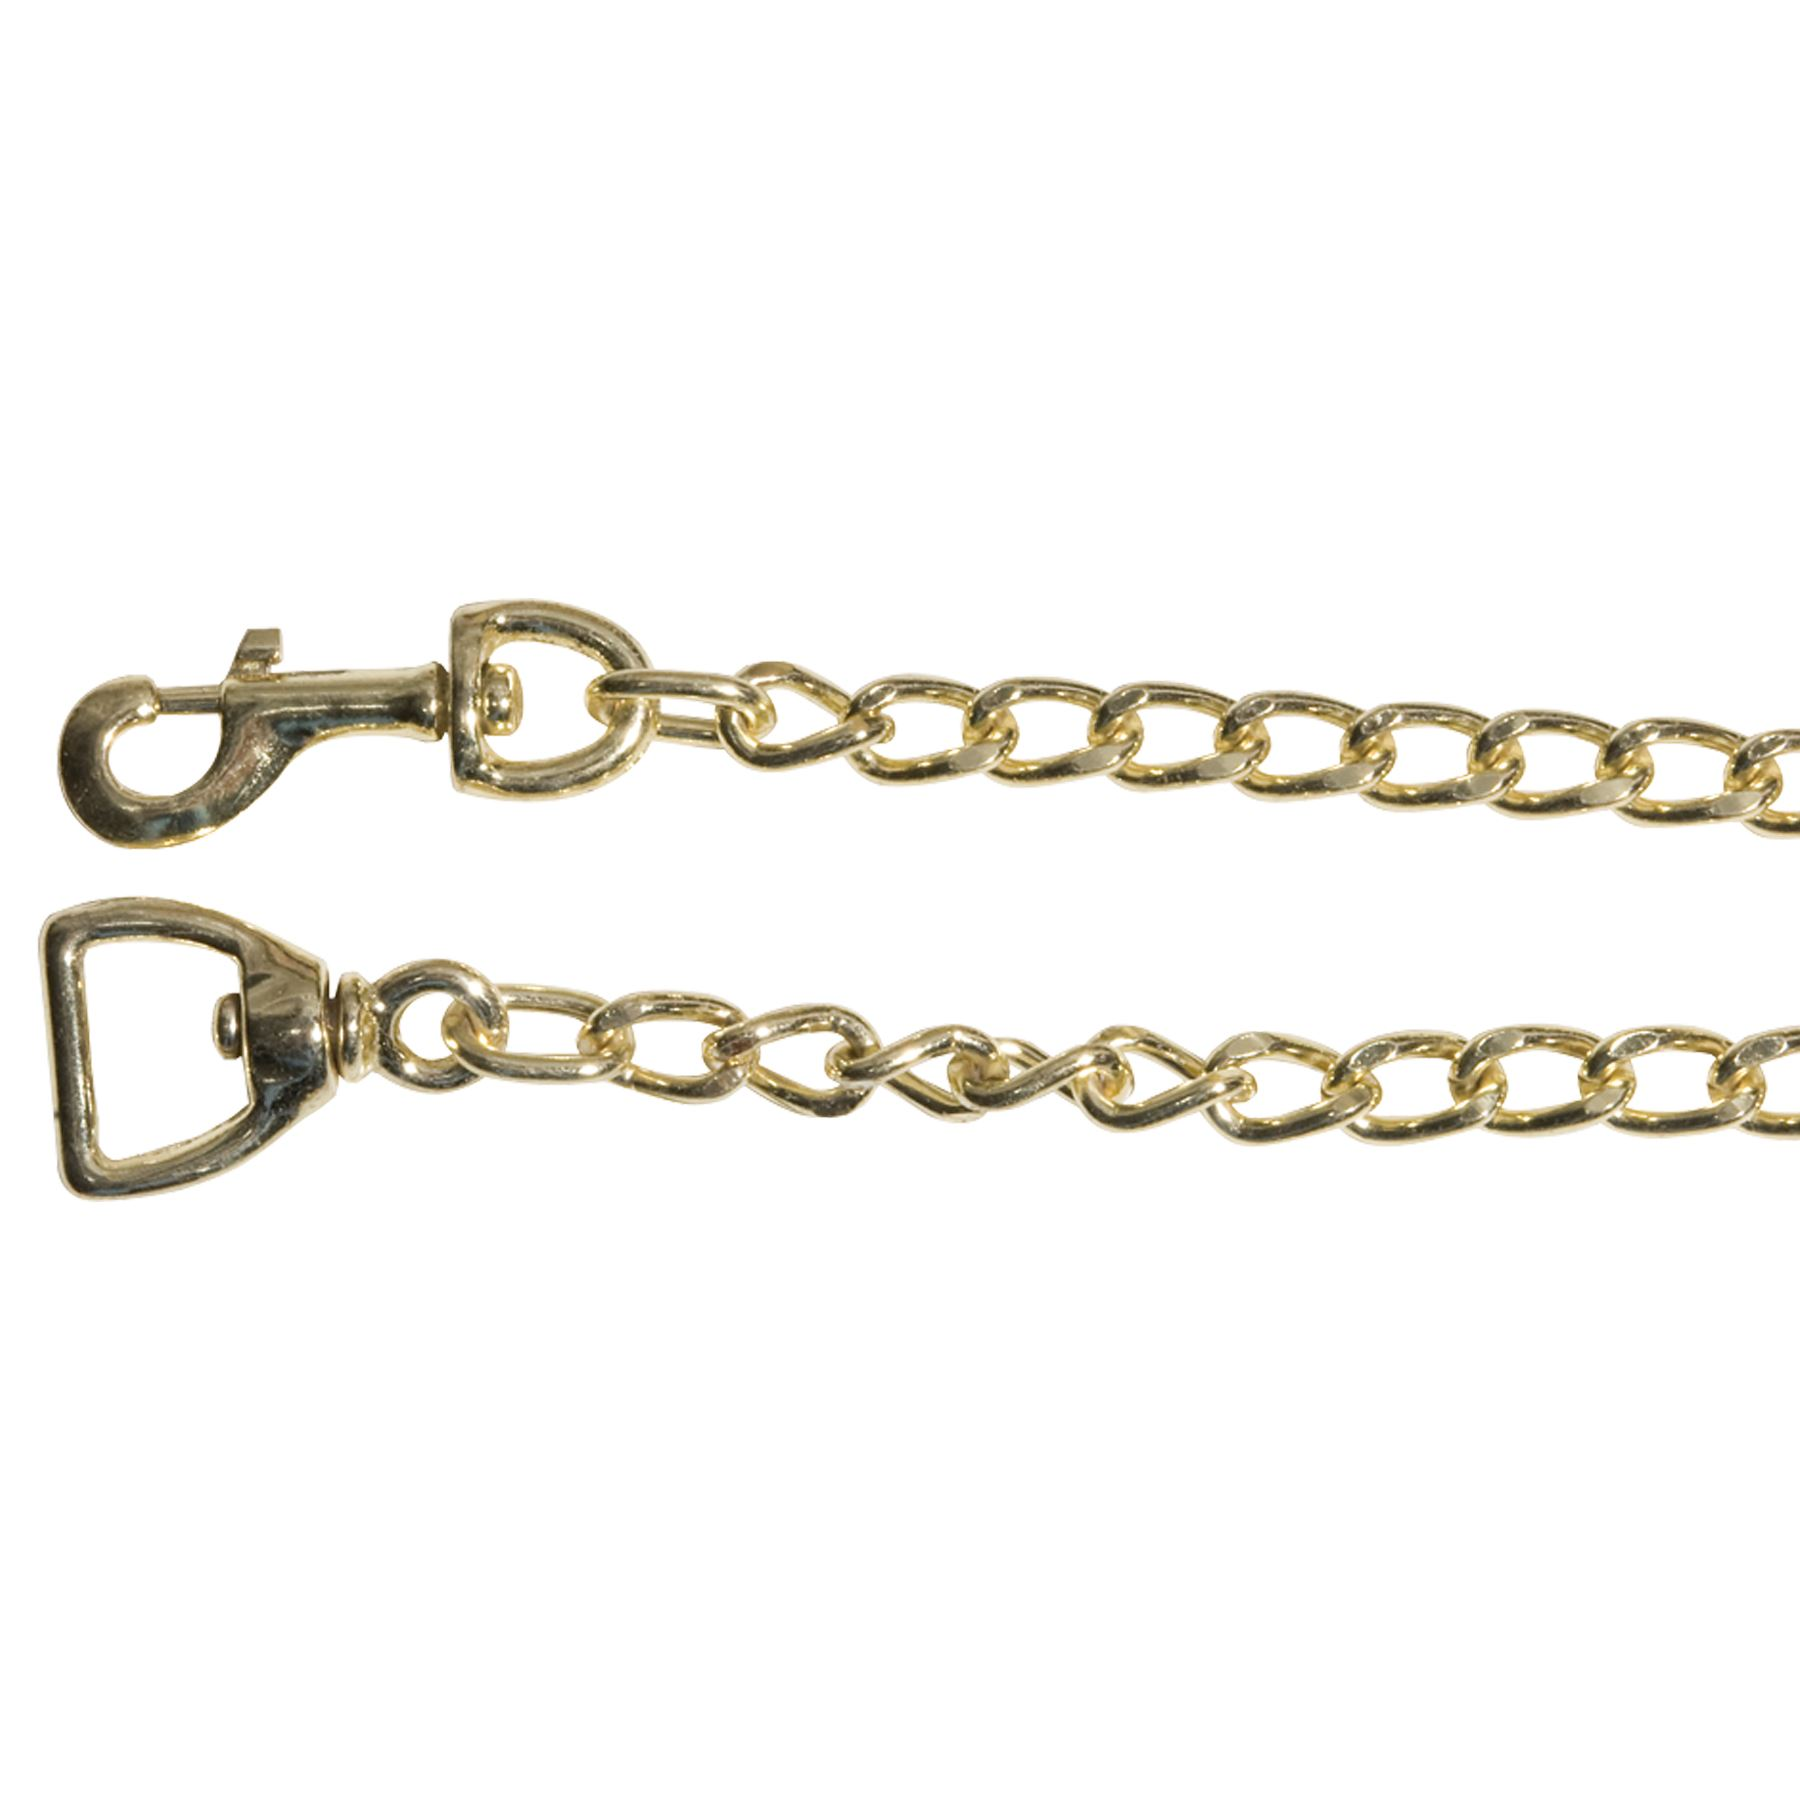 Heavy Duty Brass Plated Chain - 30""